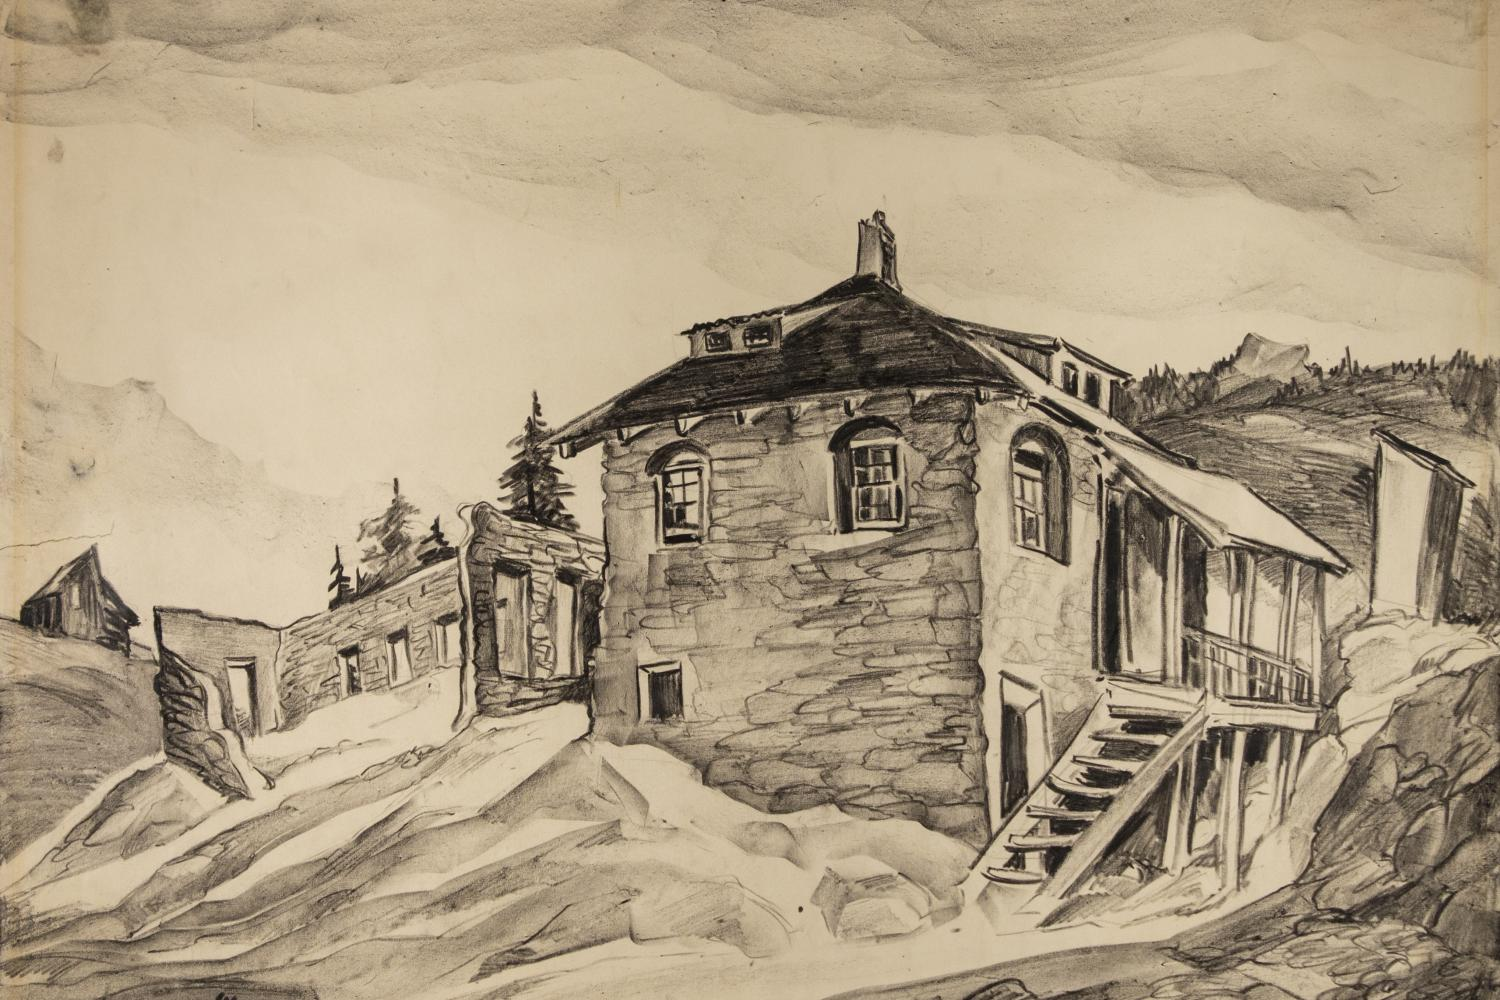 Pencil drawing of a post office in the mountains